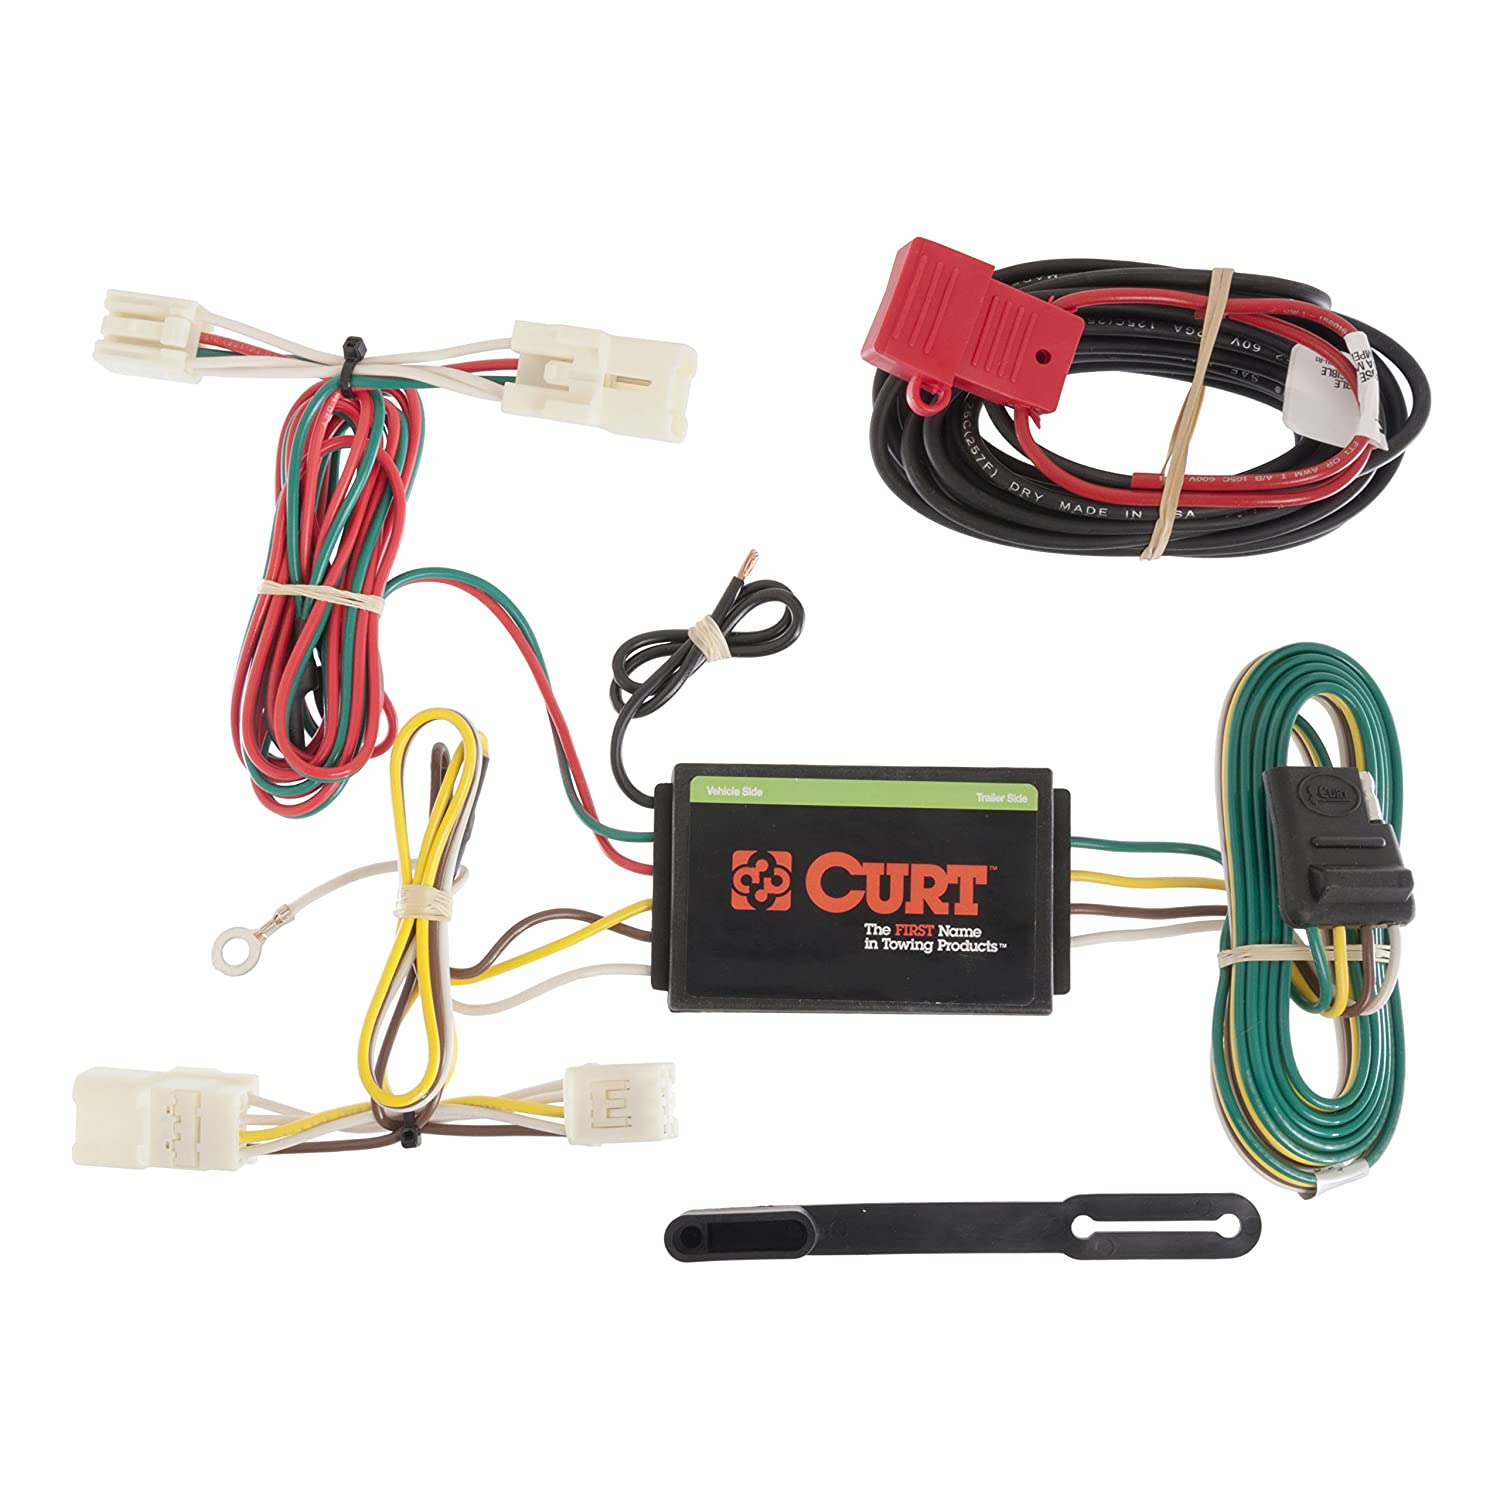 817l7jcQOtL._SL1500_ amazon com curt 56165 custom wiring harness automotive curt trailer wiring harness kit at mifinder.co